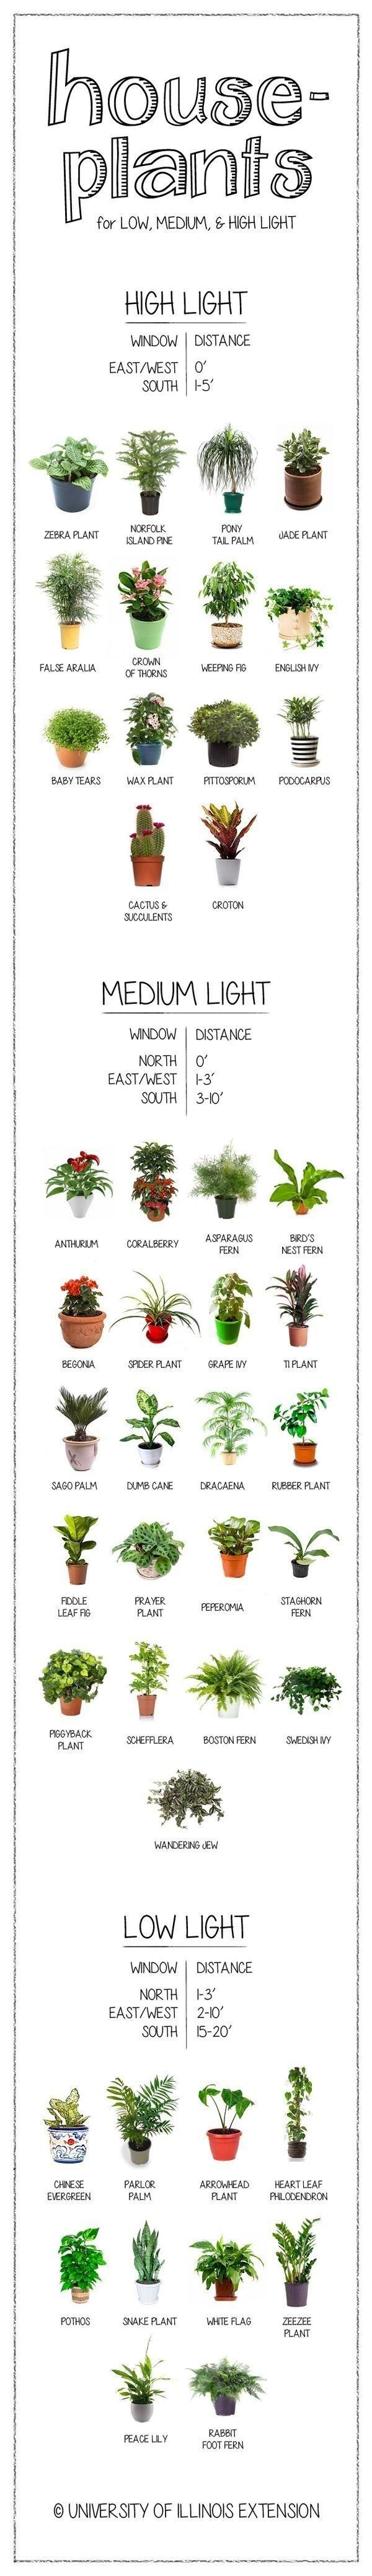 So useful right now: a visual guide to houseplants, according to their need for light. #Planting #DIY #Ideas RealPalmTrees.com New Ideas #palmtrees #creative #GreatView #CoolPlants #Plants #homeIdeas #Outdoorliving #2015